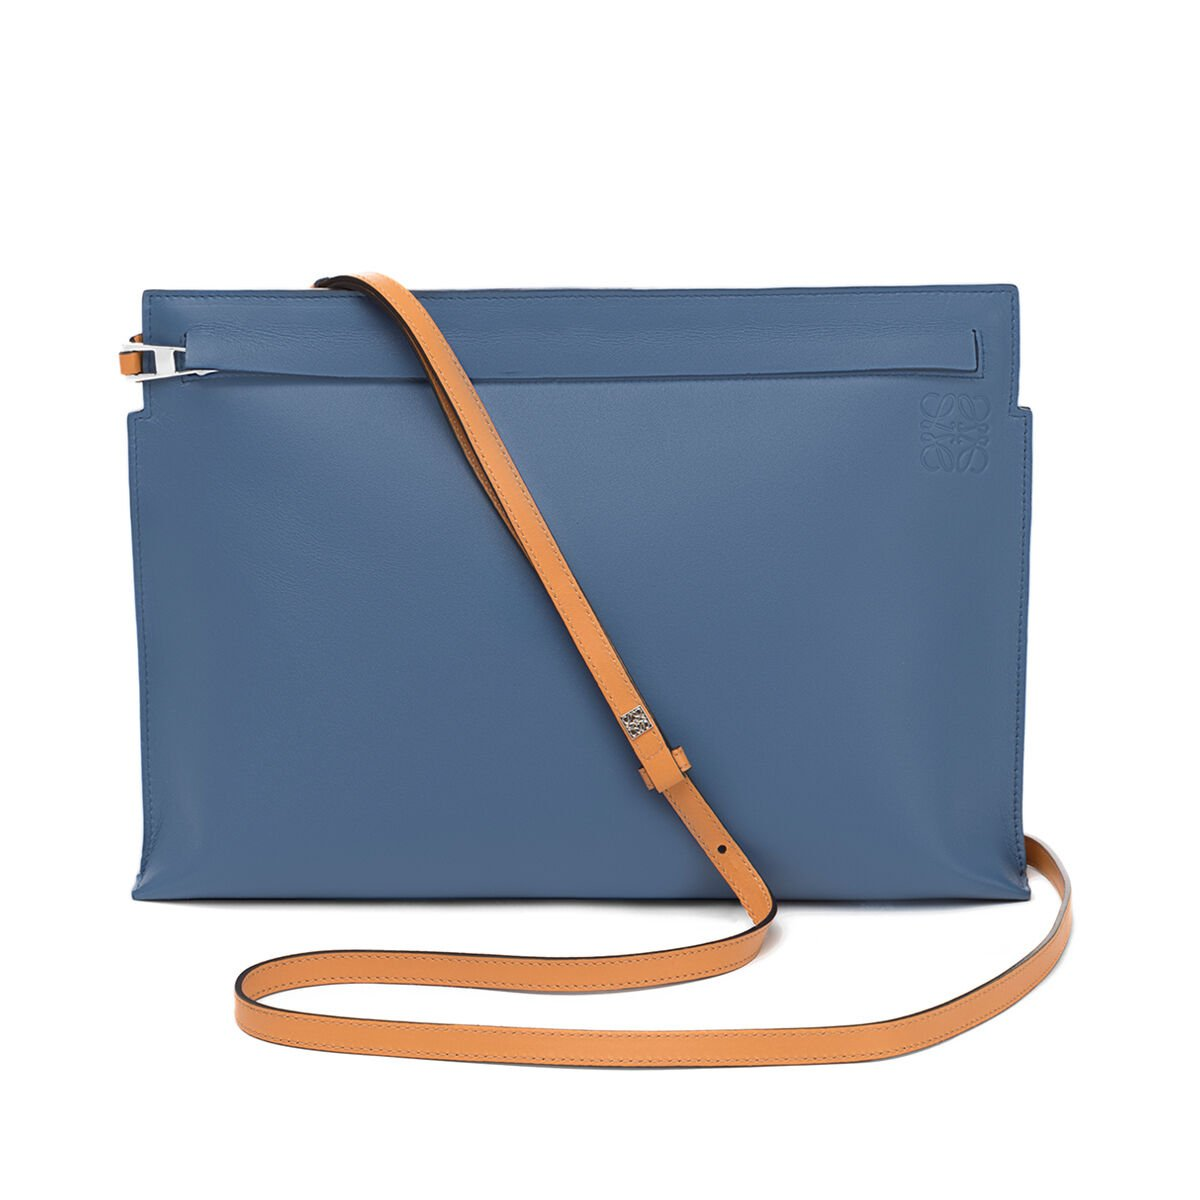 LOEWE T Pouch Bag Varsity Blue/Amber all